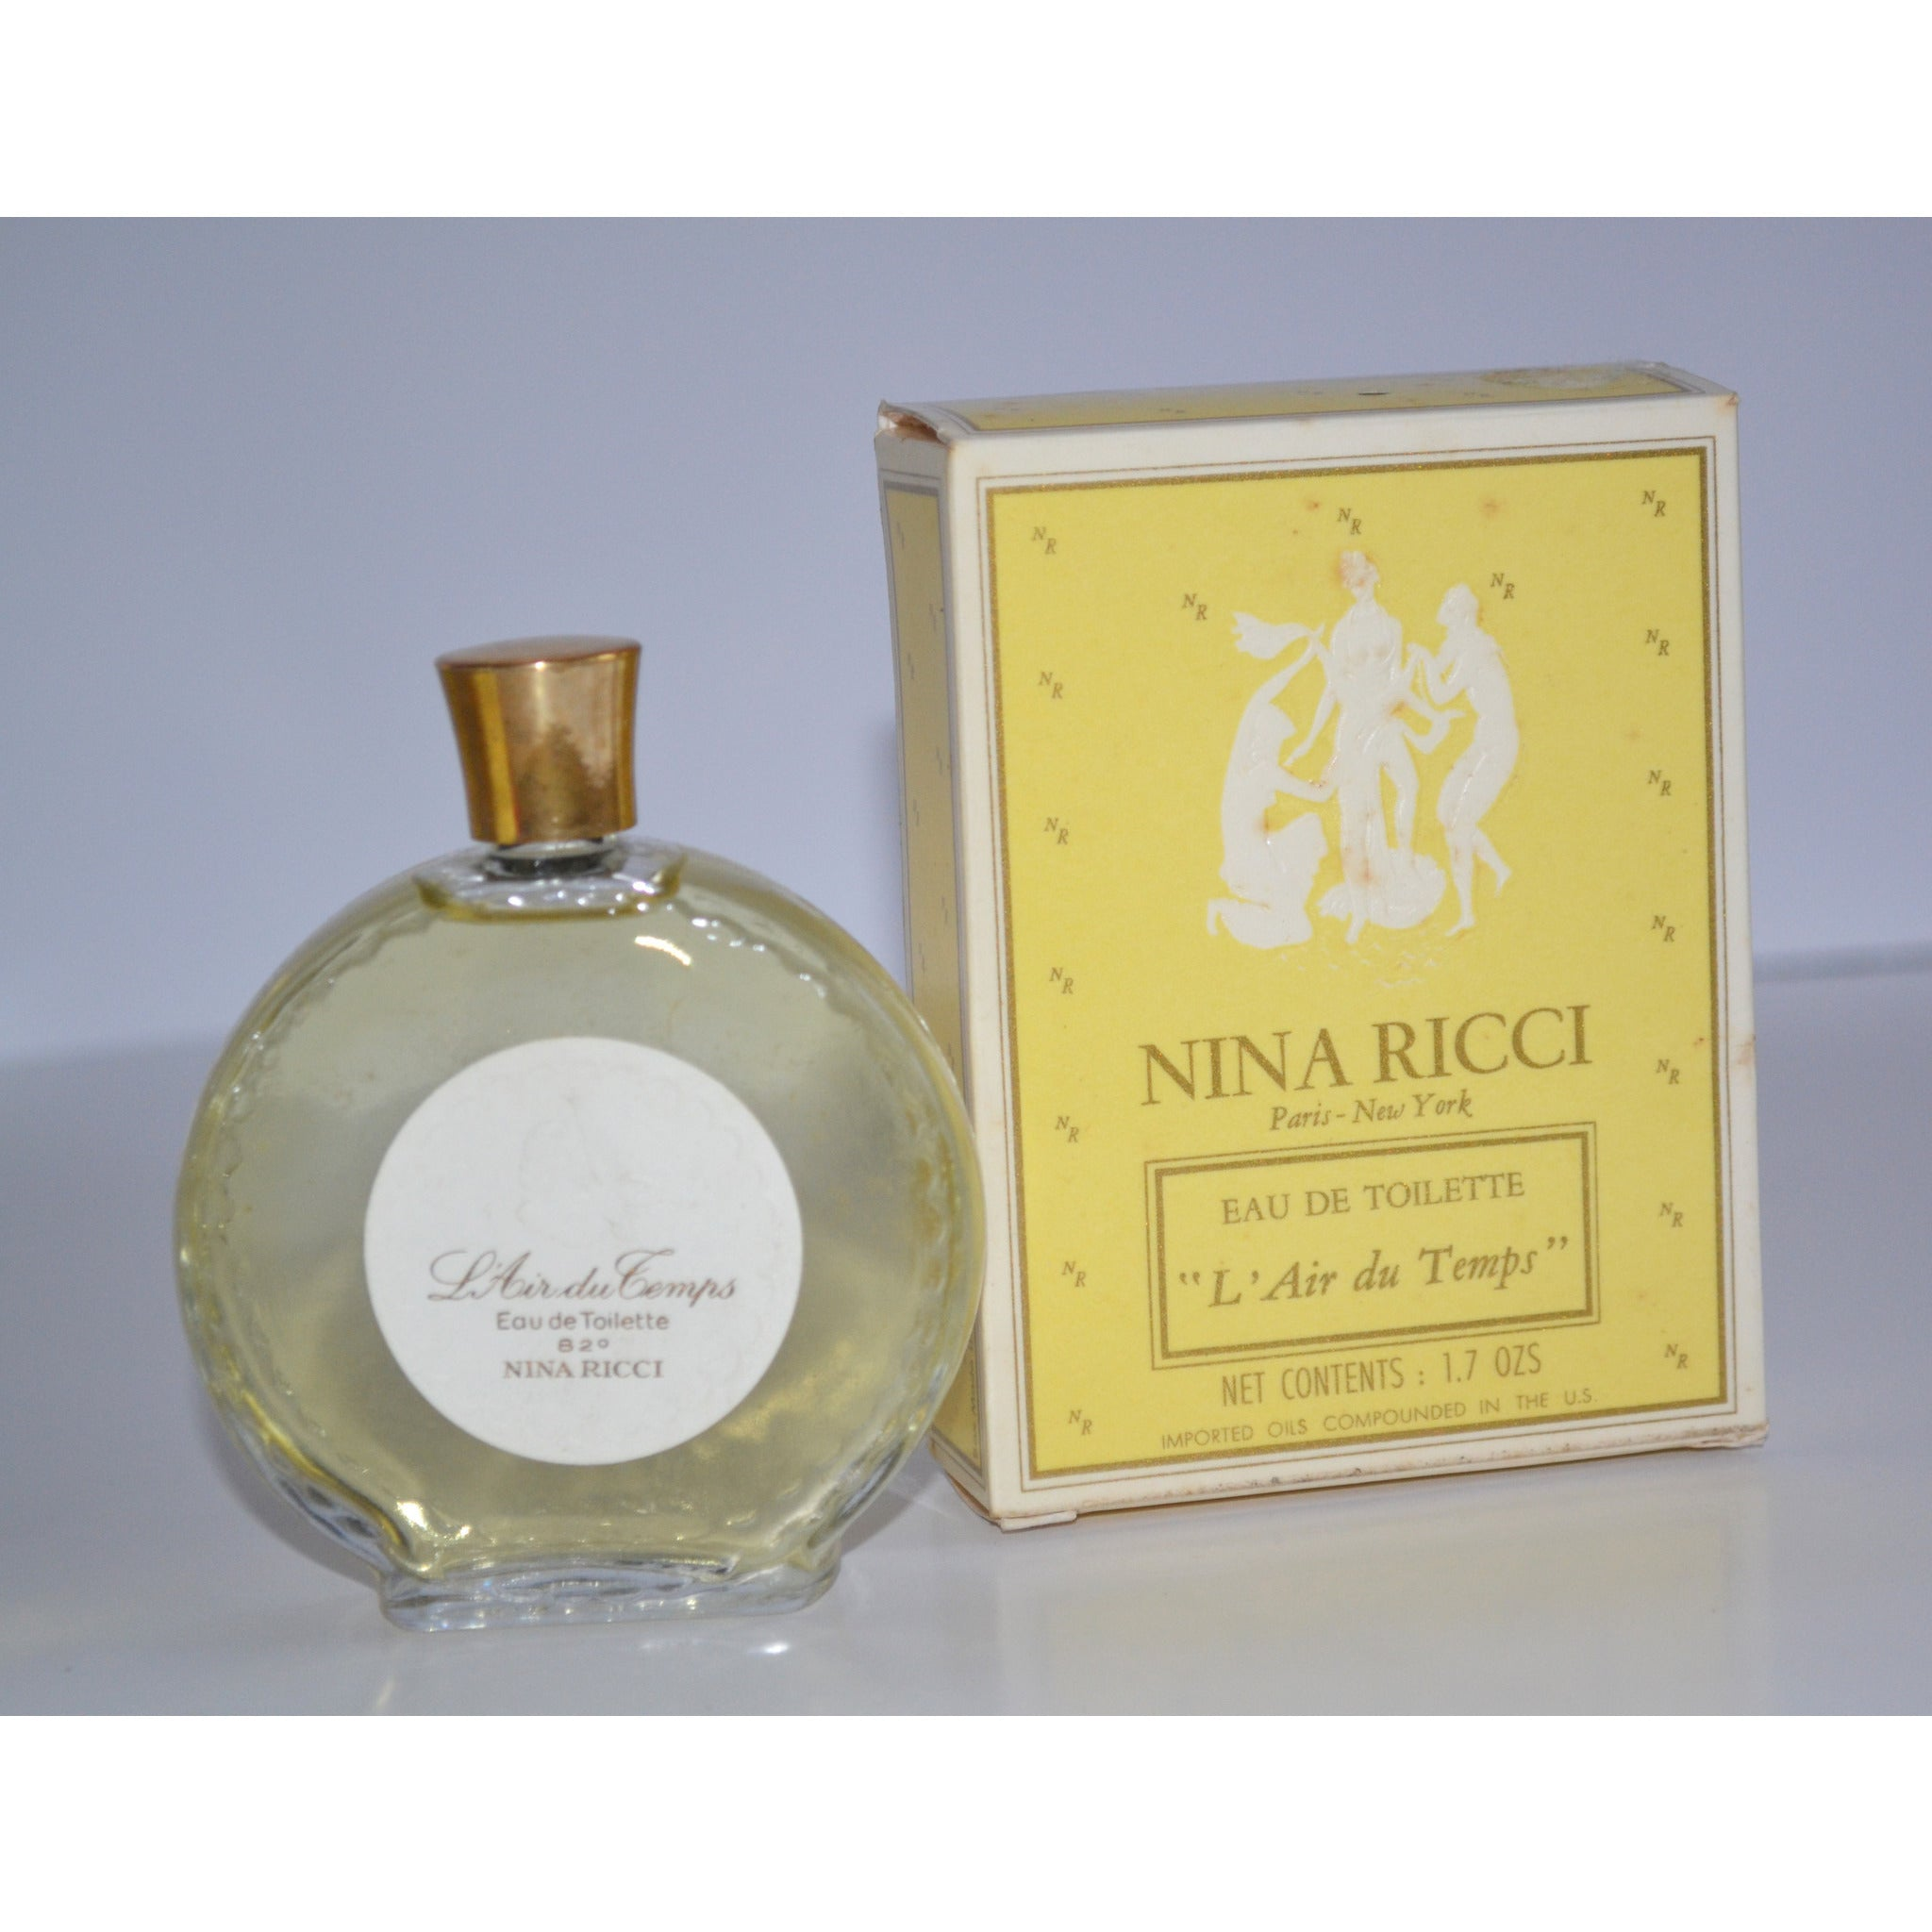 Vintage L'air du Temps Toilette By Nina Ricci